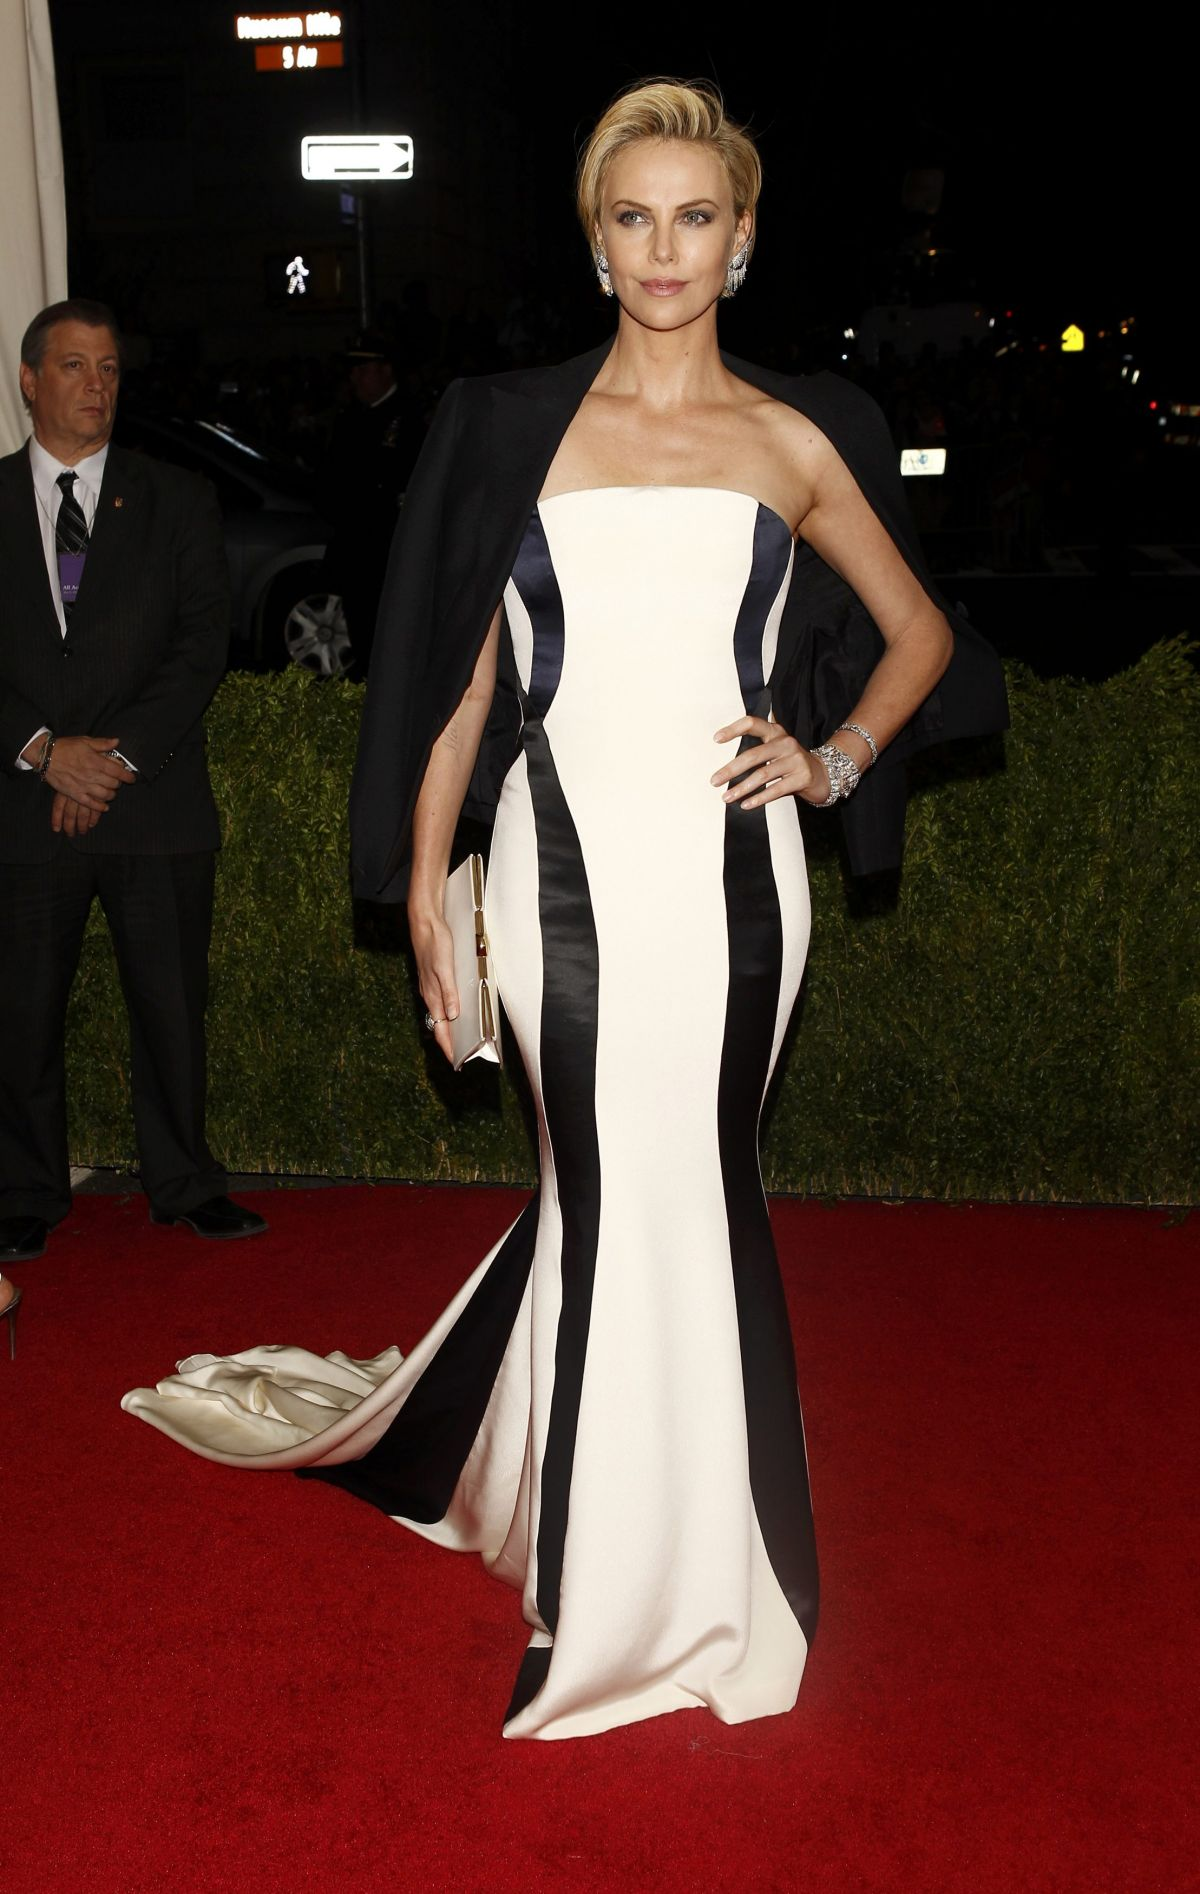 CHARLIZE THERON at MET Gala 2014 in New York